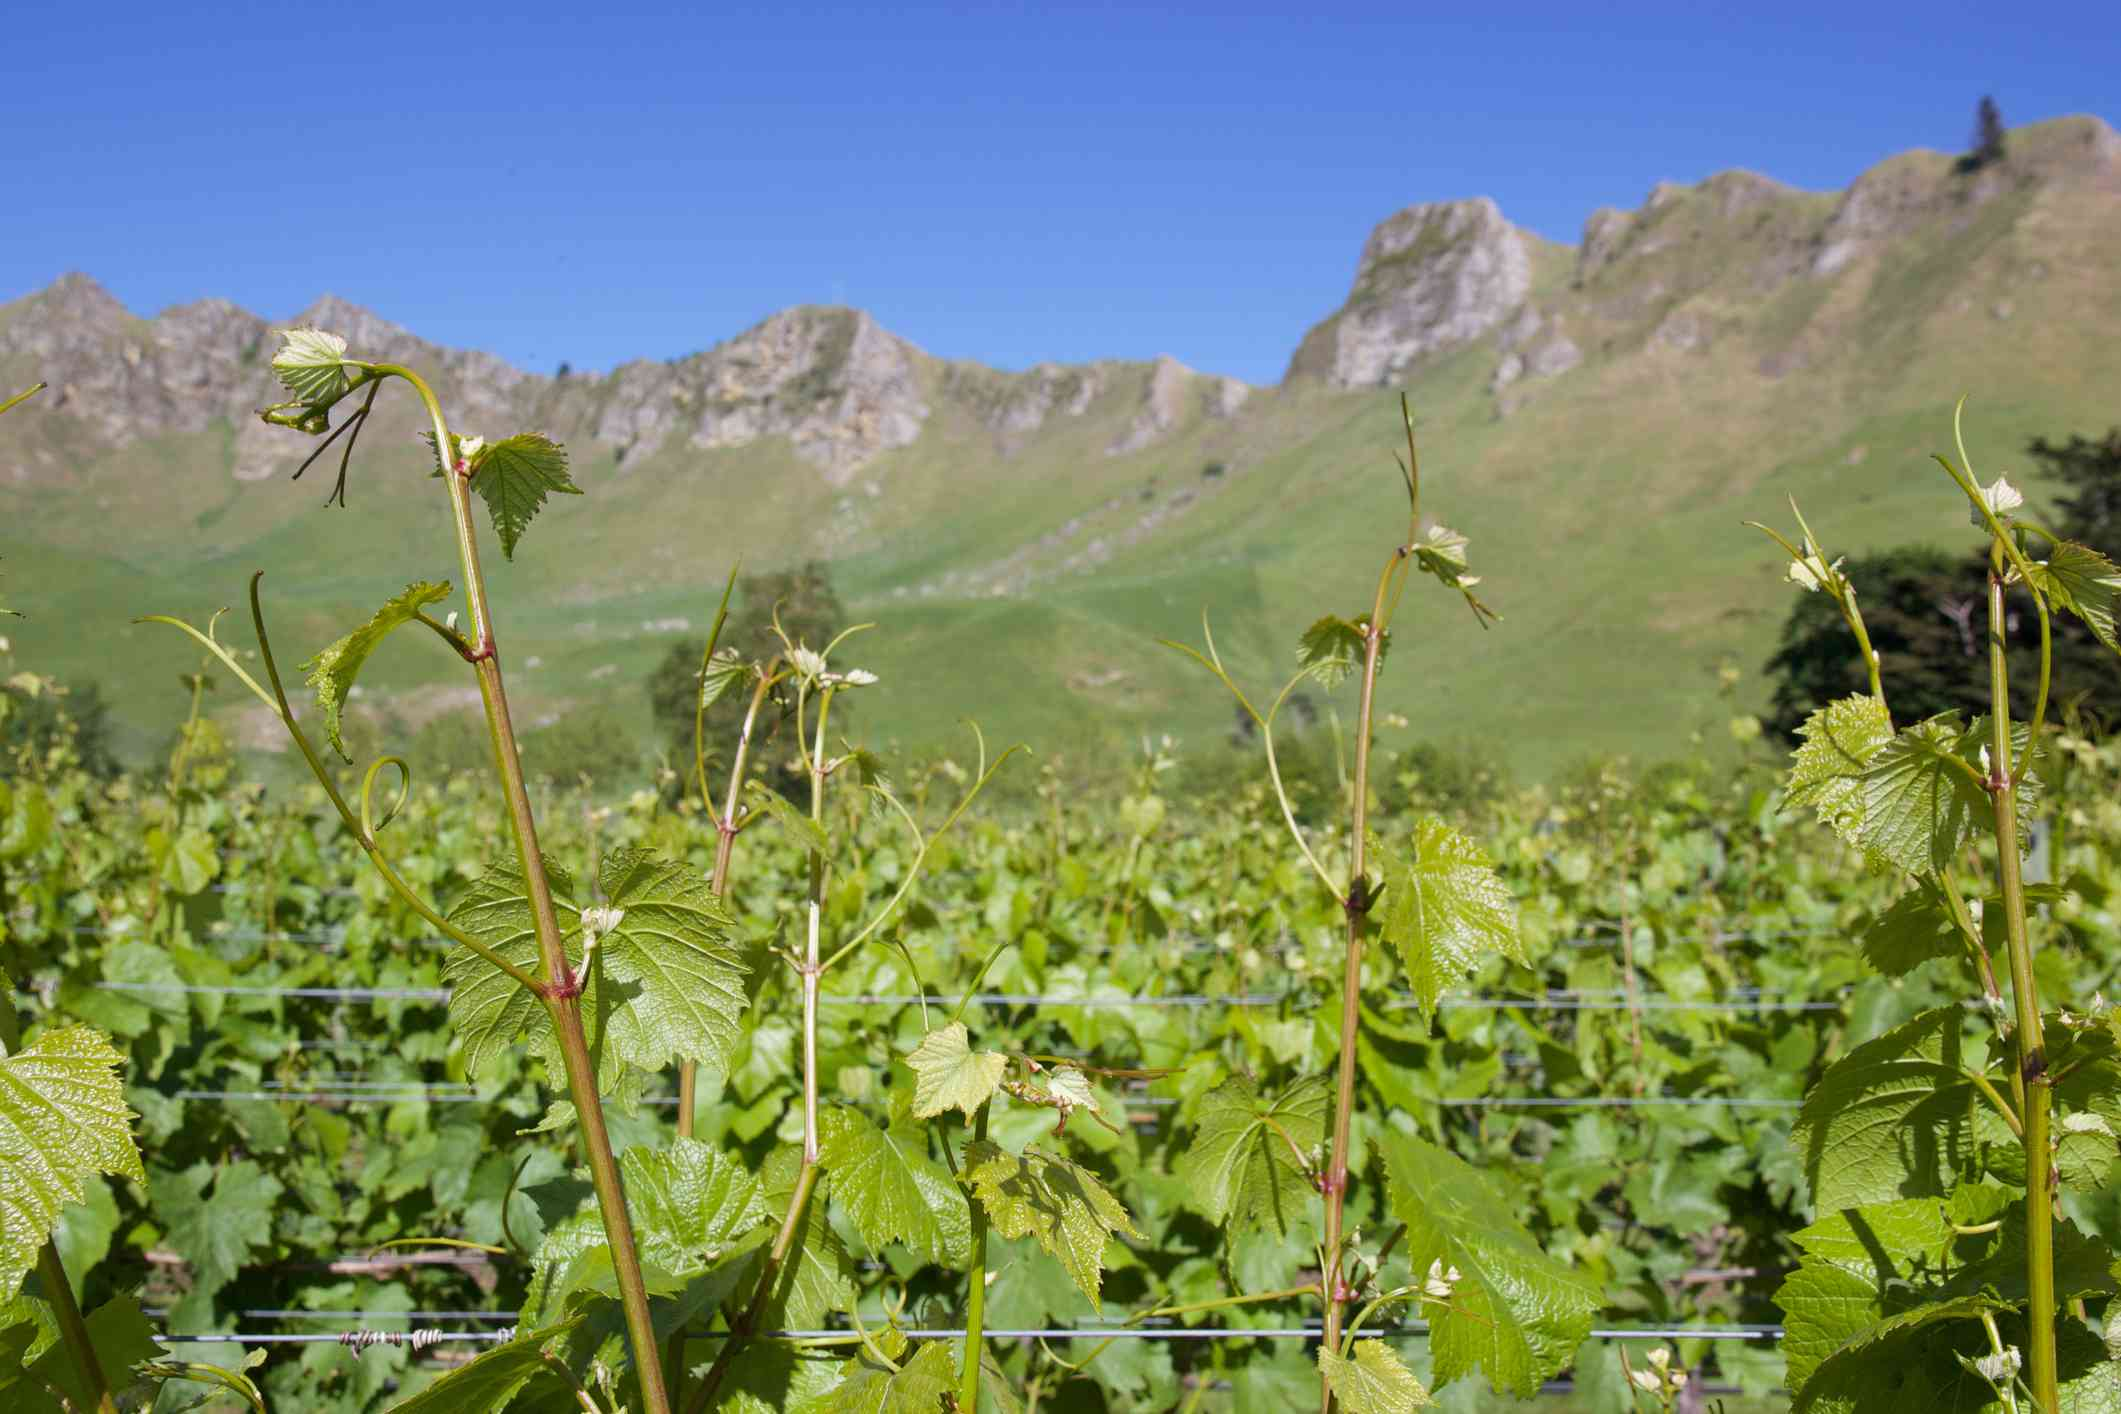 grapevines with rocky cliffs in the background